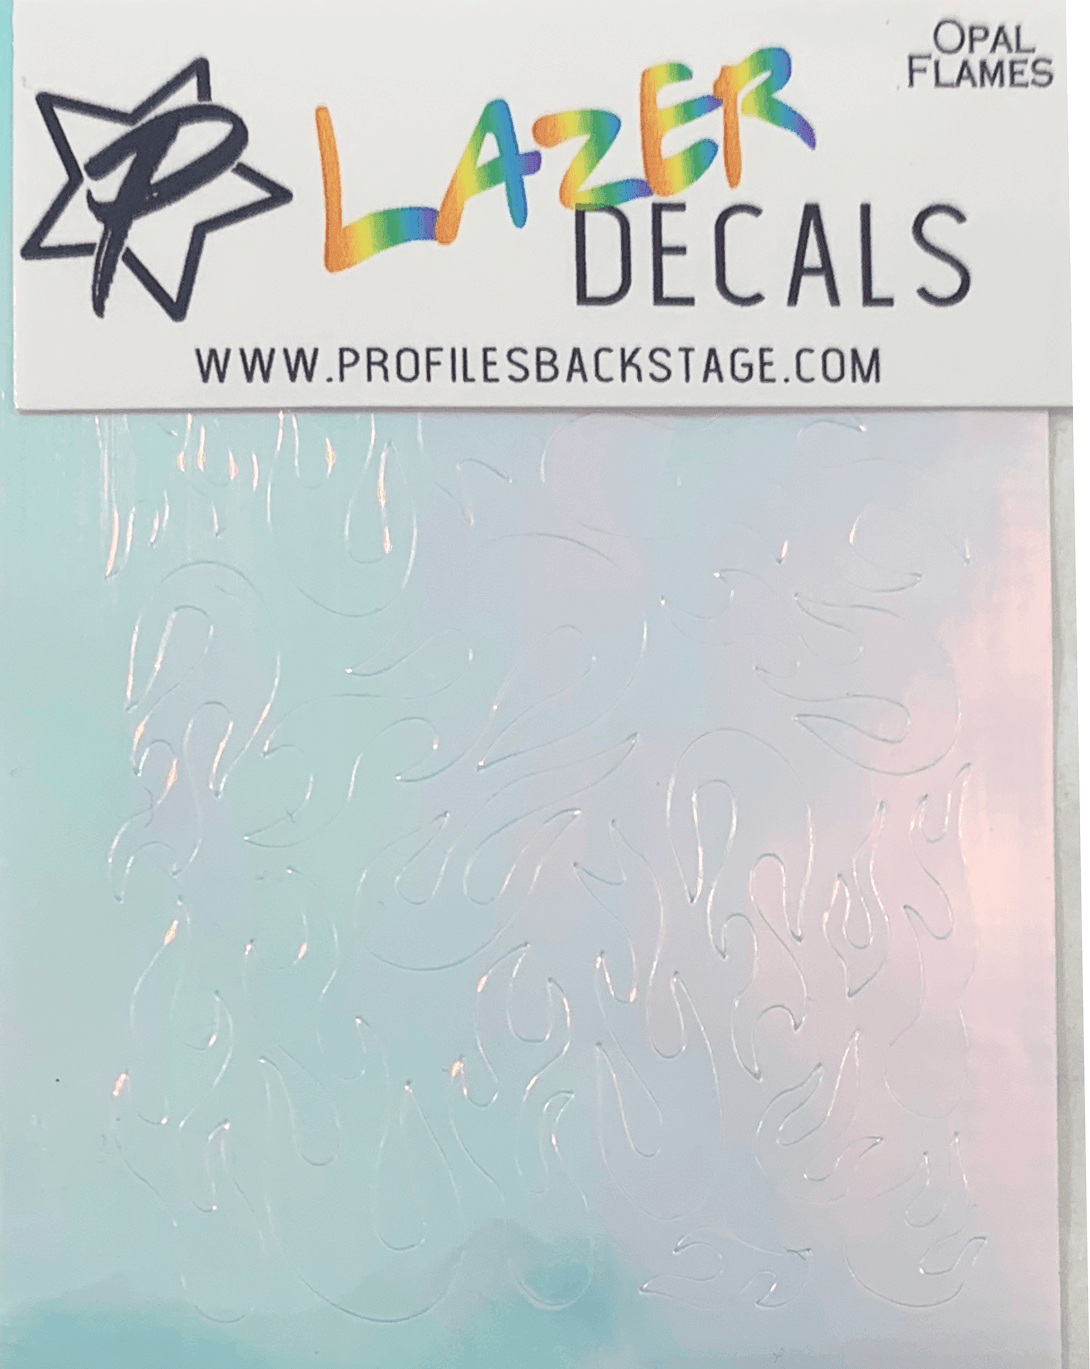 Lazer Decals Flames - Opal